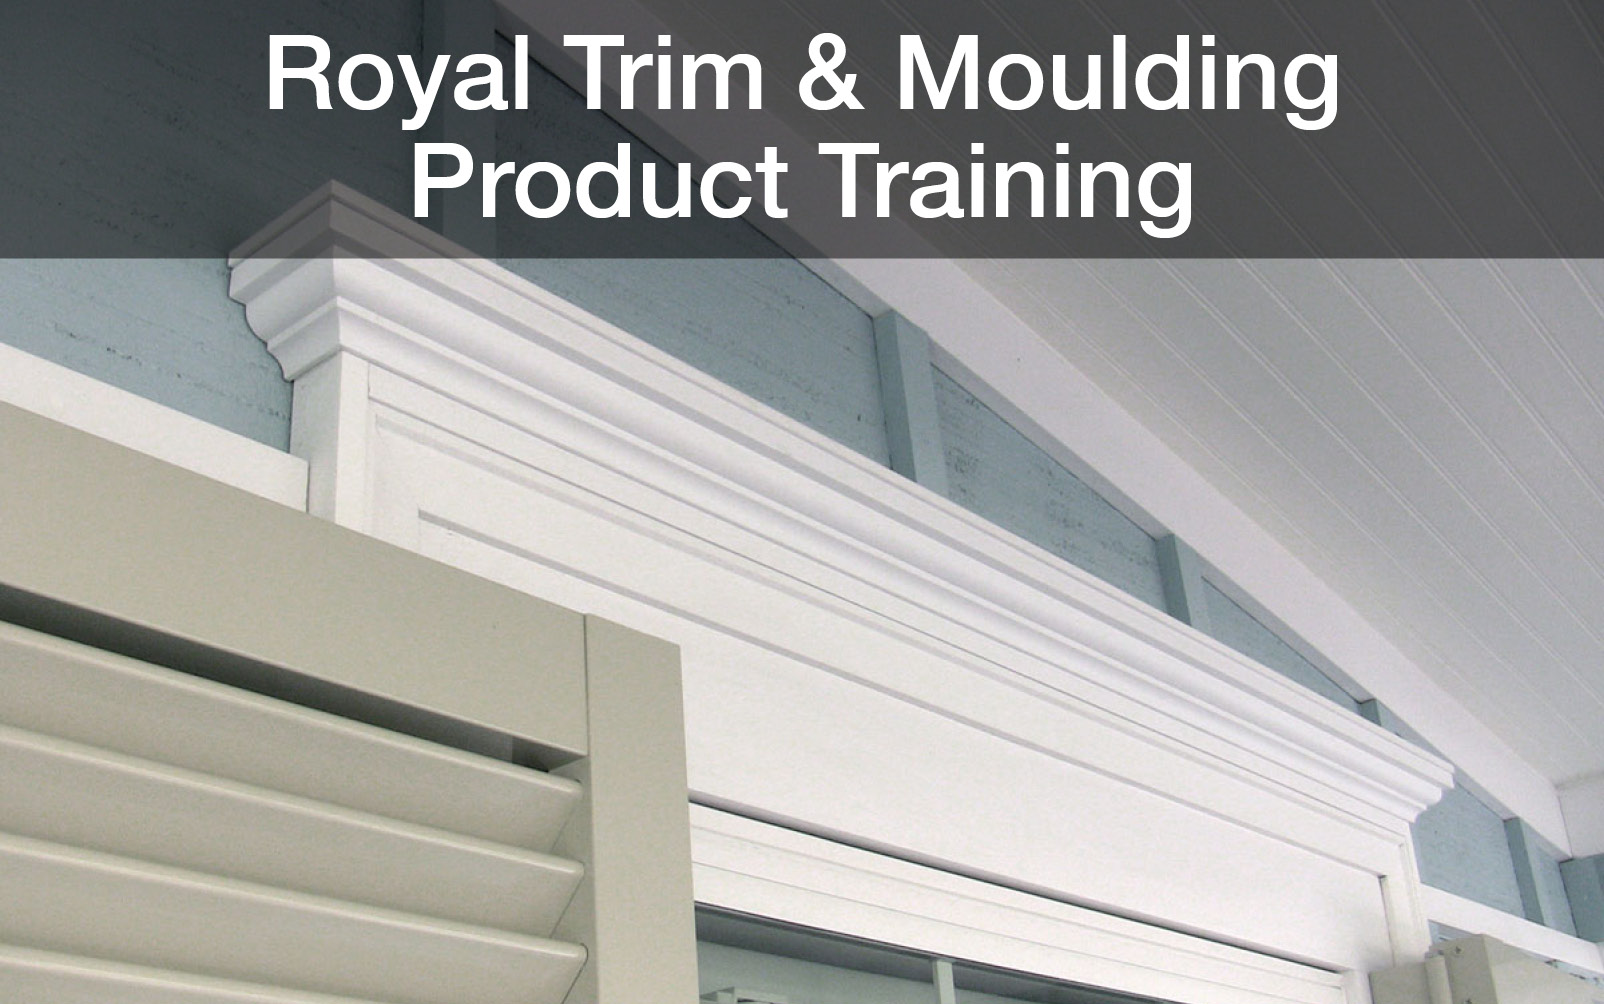 Royal Trim & Moulding Product Training